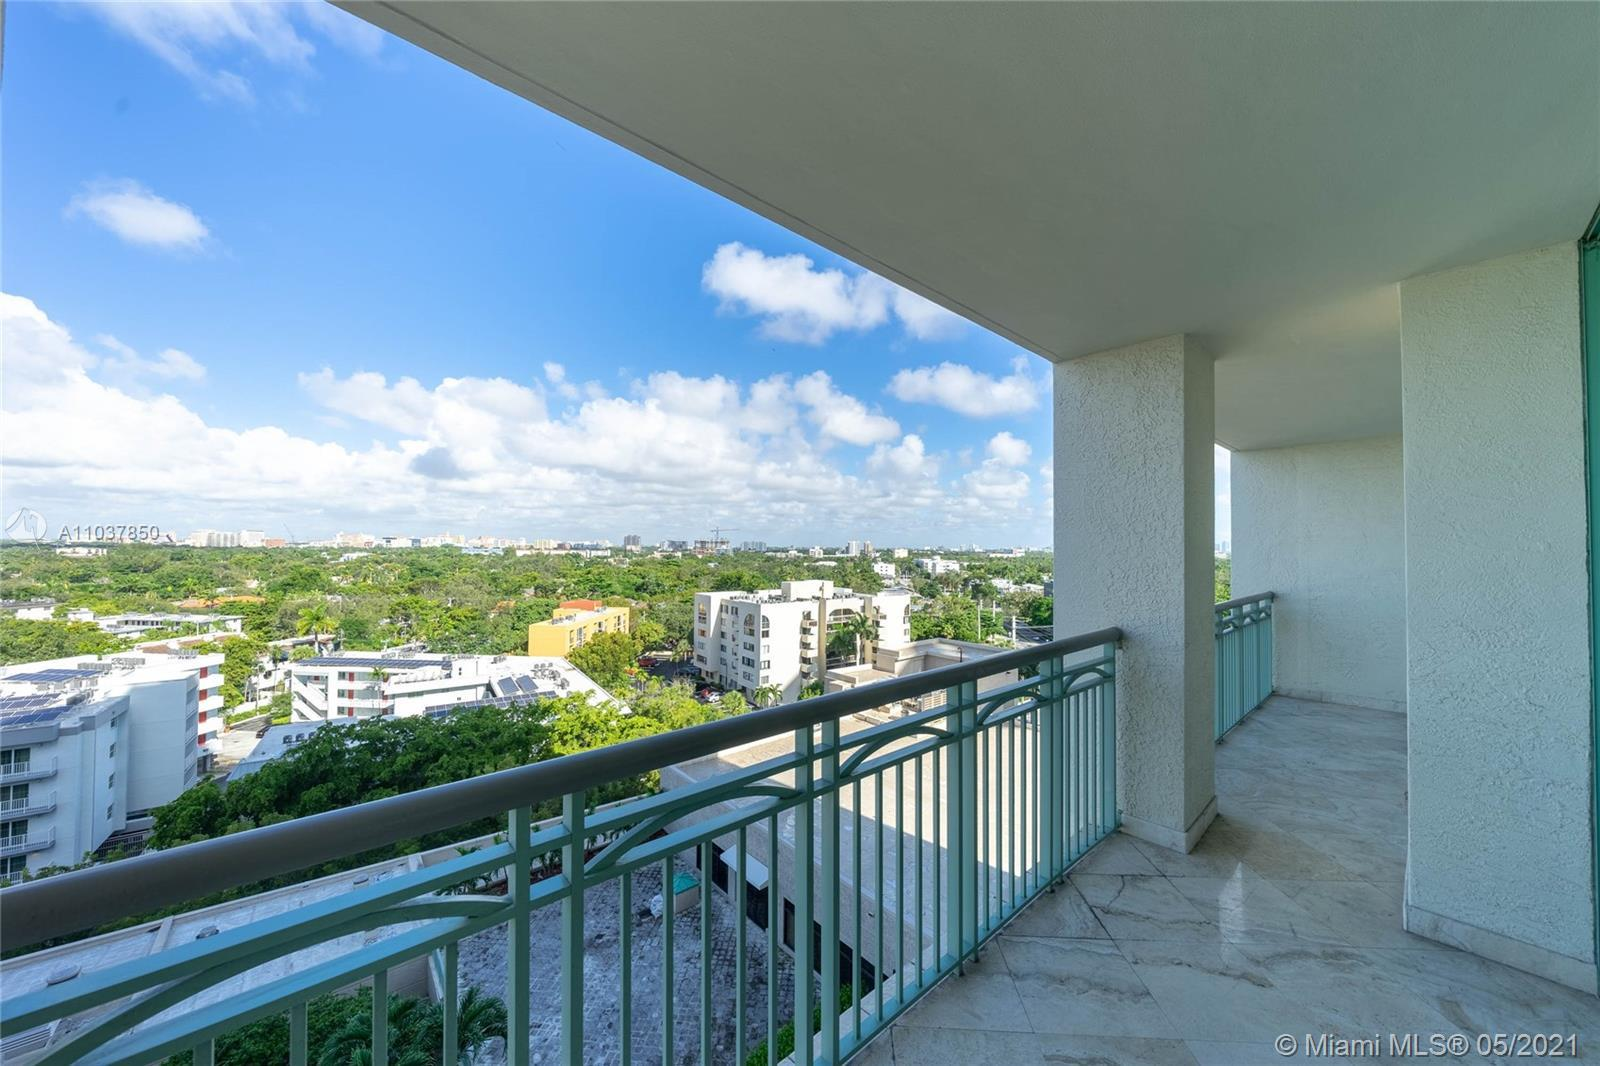 Modern finishes in this large 1 bedroom 1.5 bath residence at the Ritz-Carlton Coconut Grove. View o